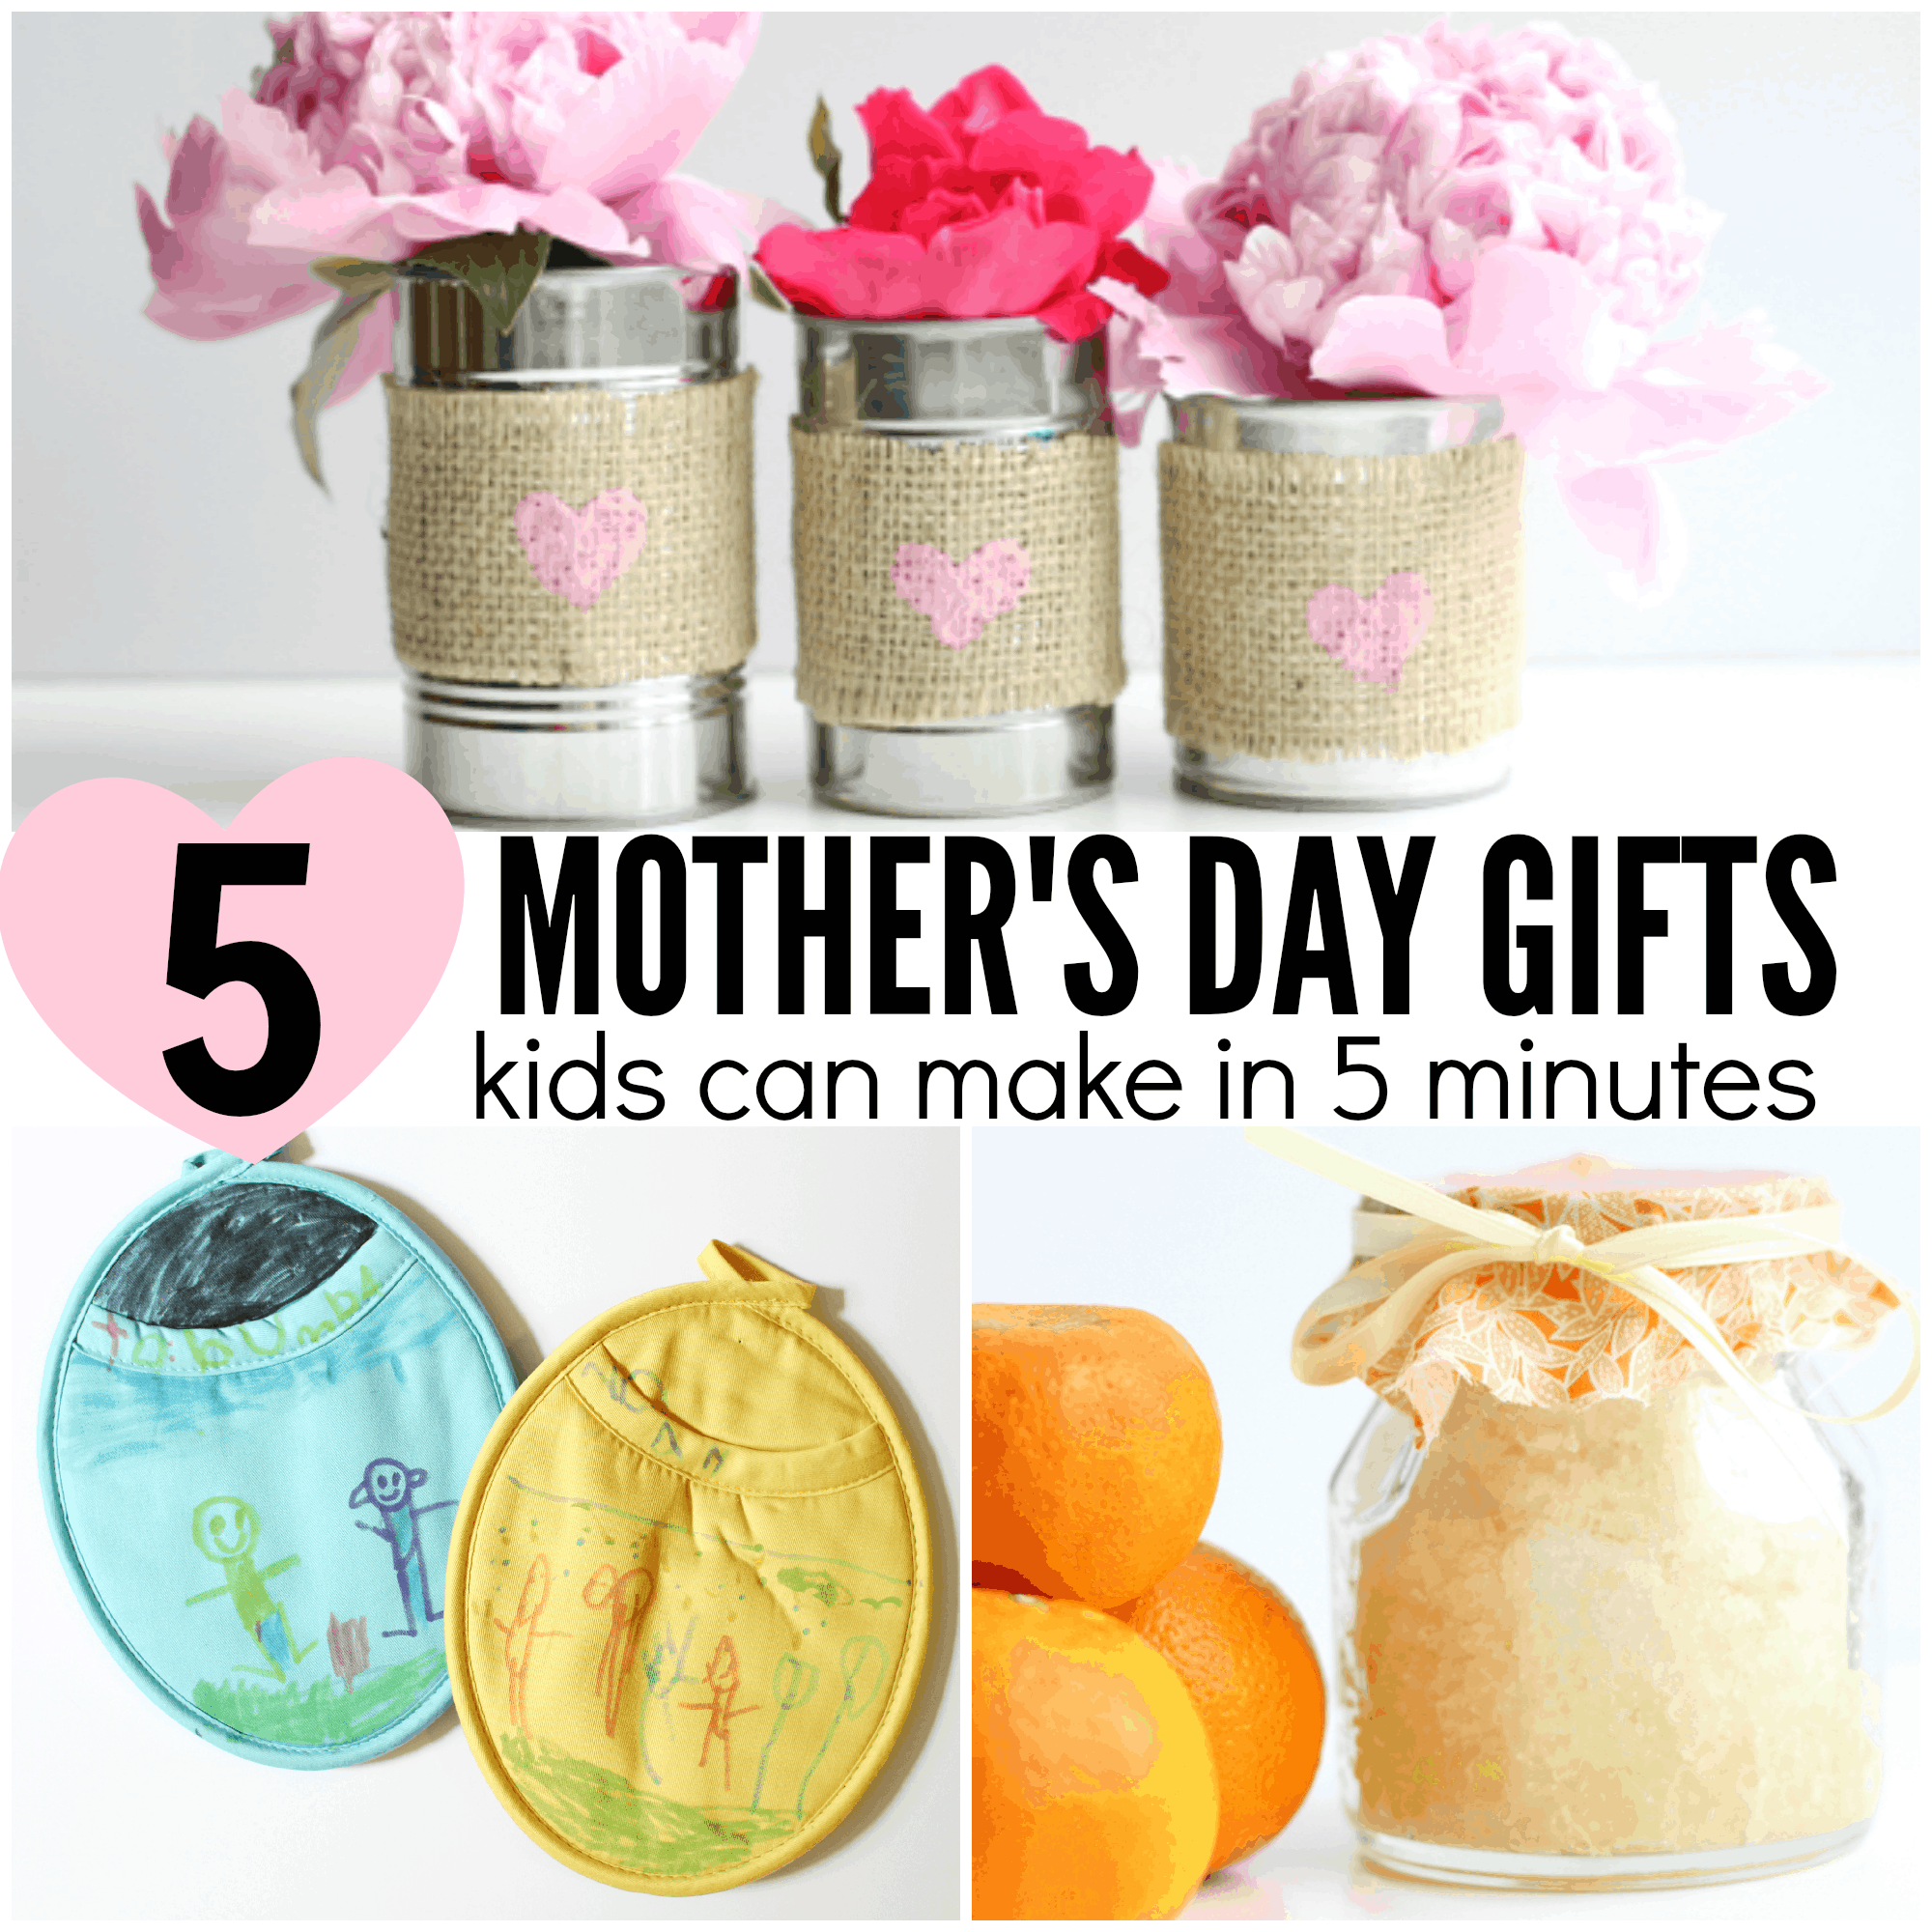 5 mothers day gifts kids can make in 5 minutes or less i can mothers day gifts kids can make in 5 minutes negle Choice Image